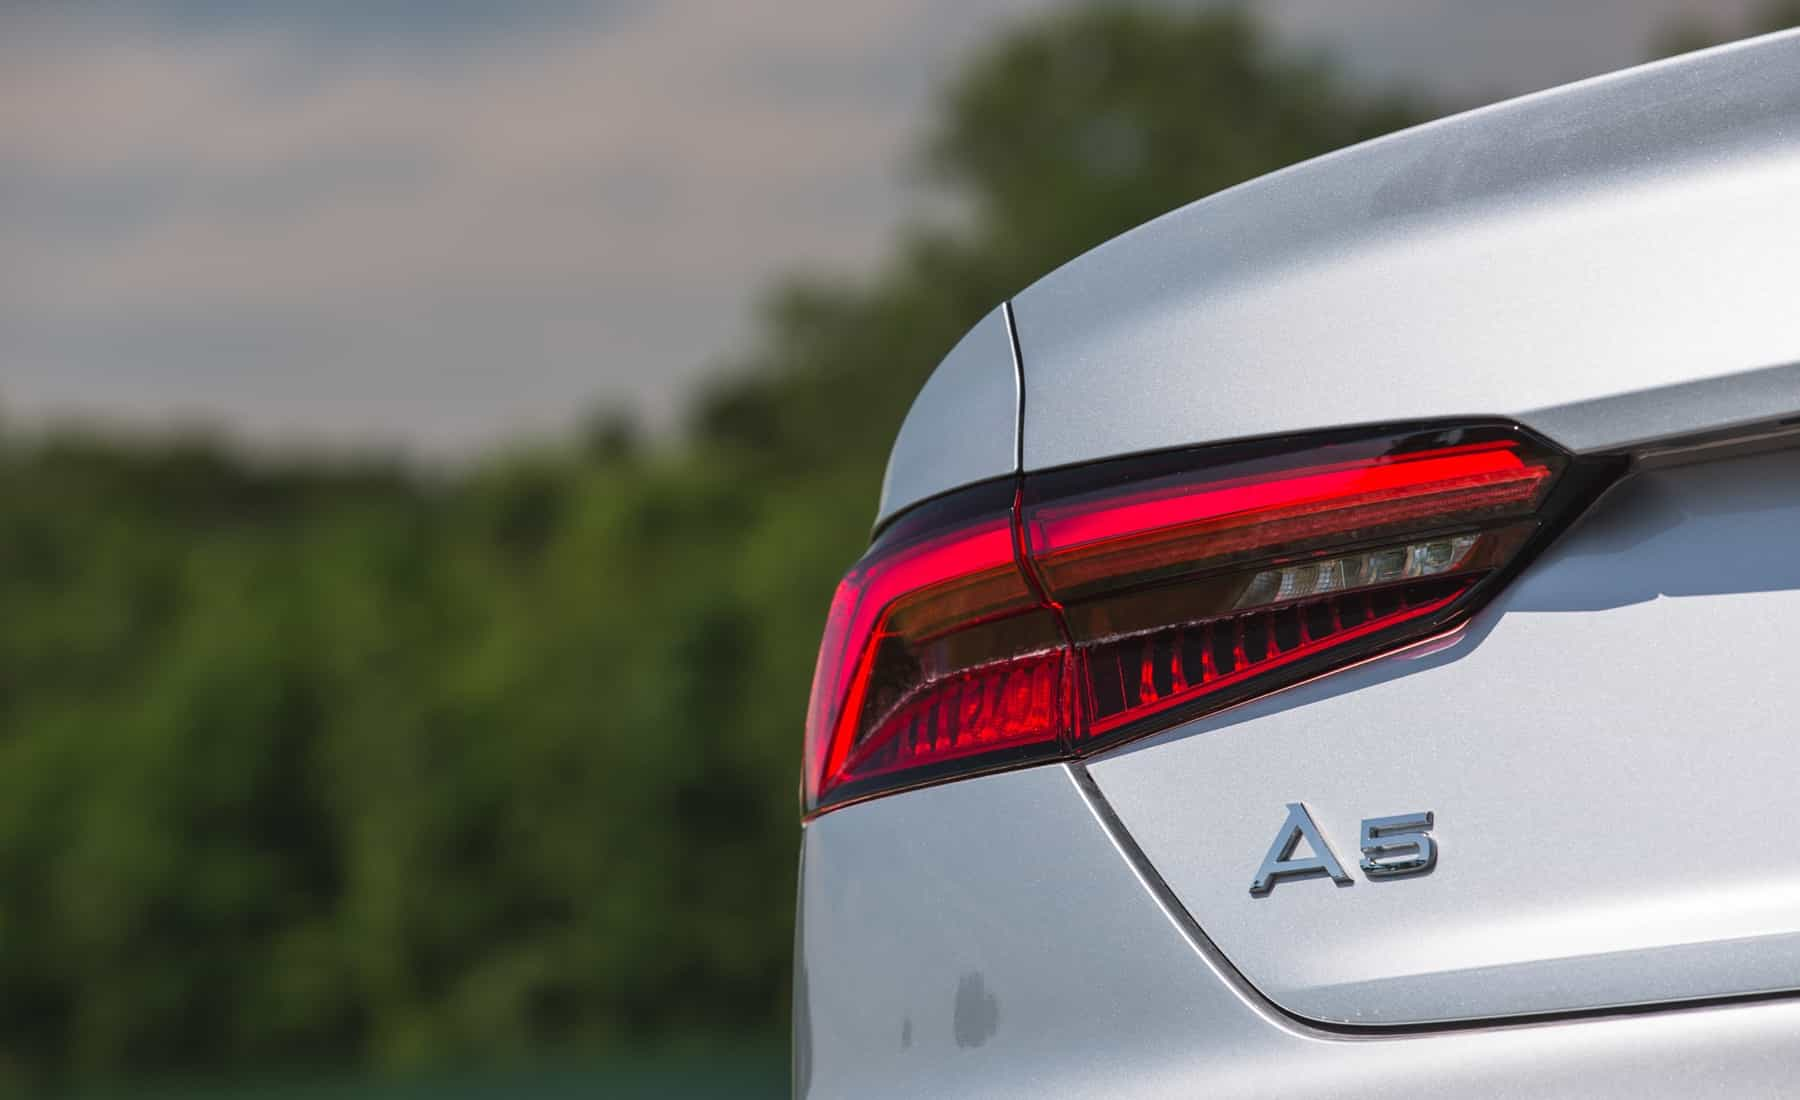 2018 Audi A5 Cabriolet Exterior View Taillight And Emblem (Photo 29 of 45)